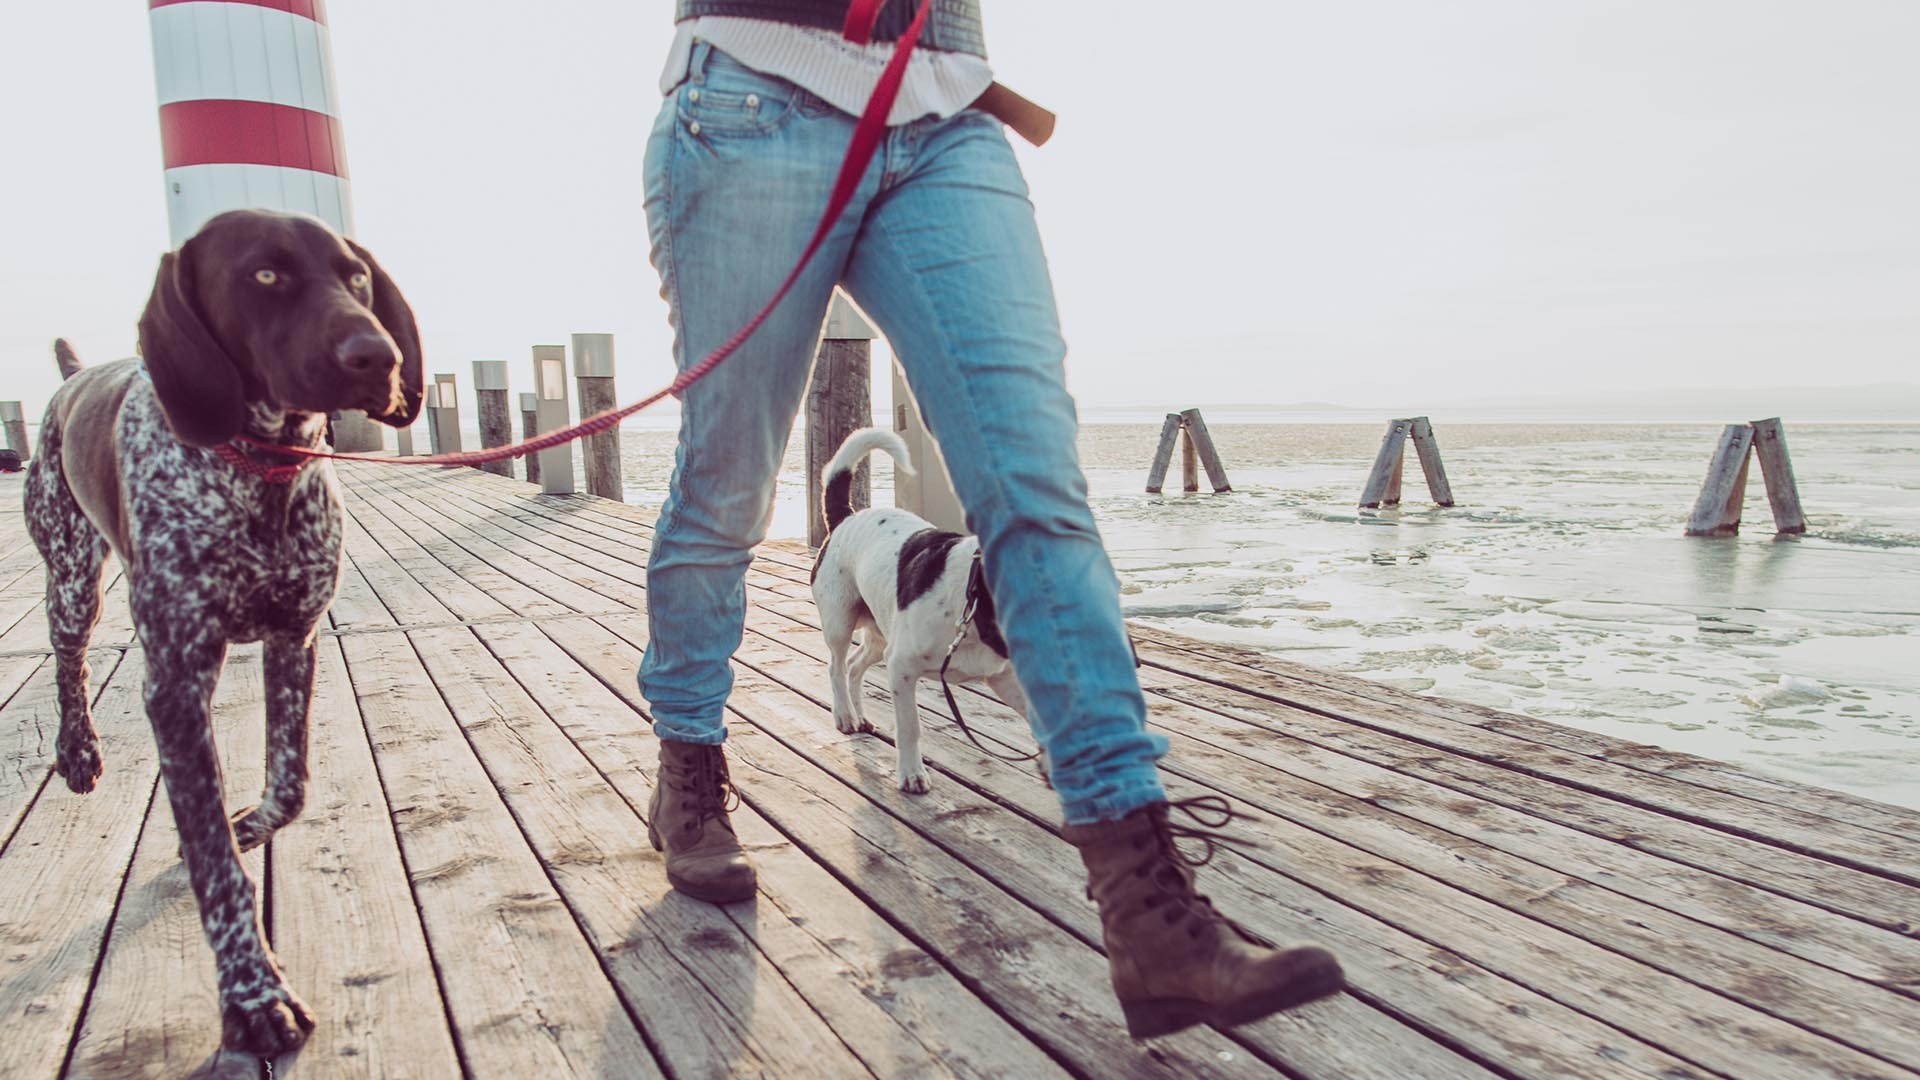 German Short Haired Pointer walking with owner on a pier